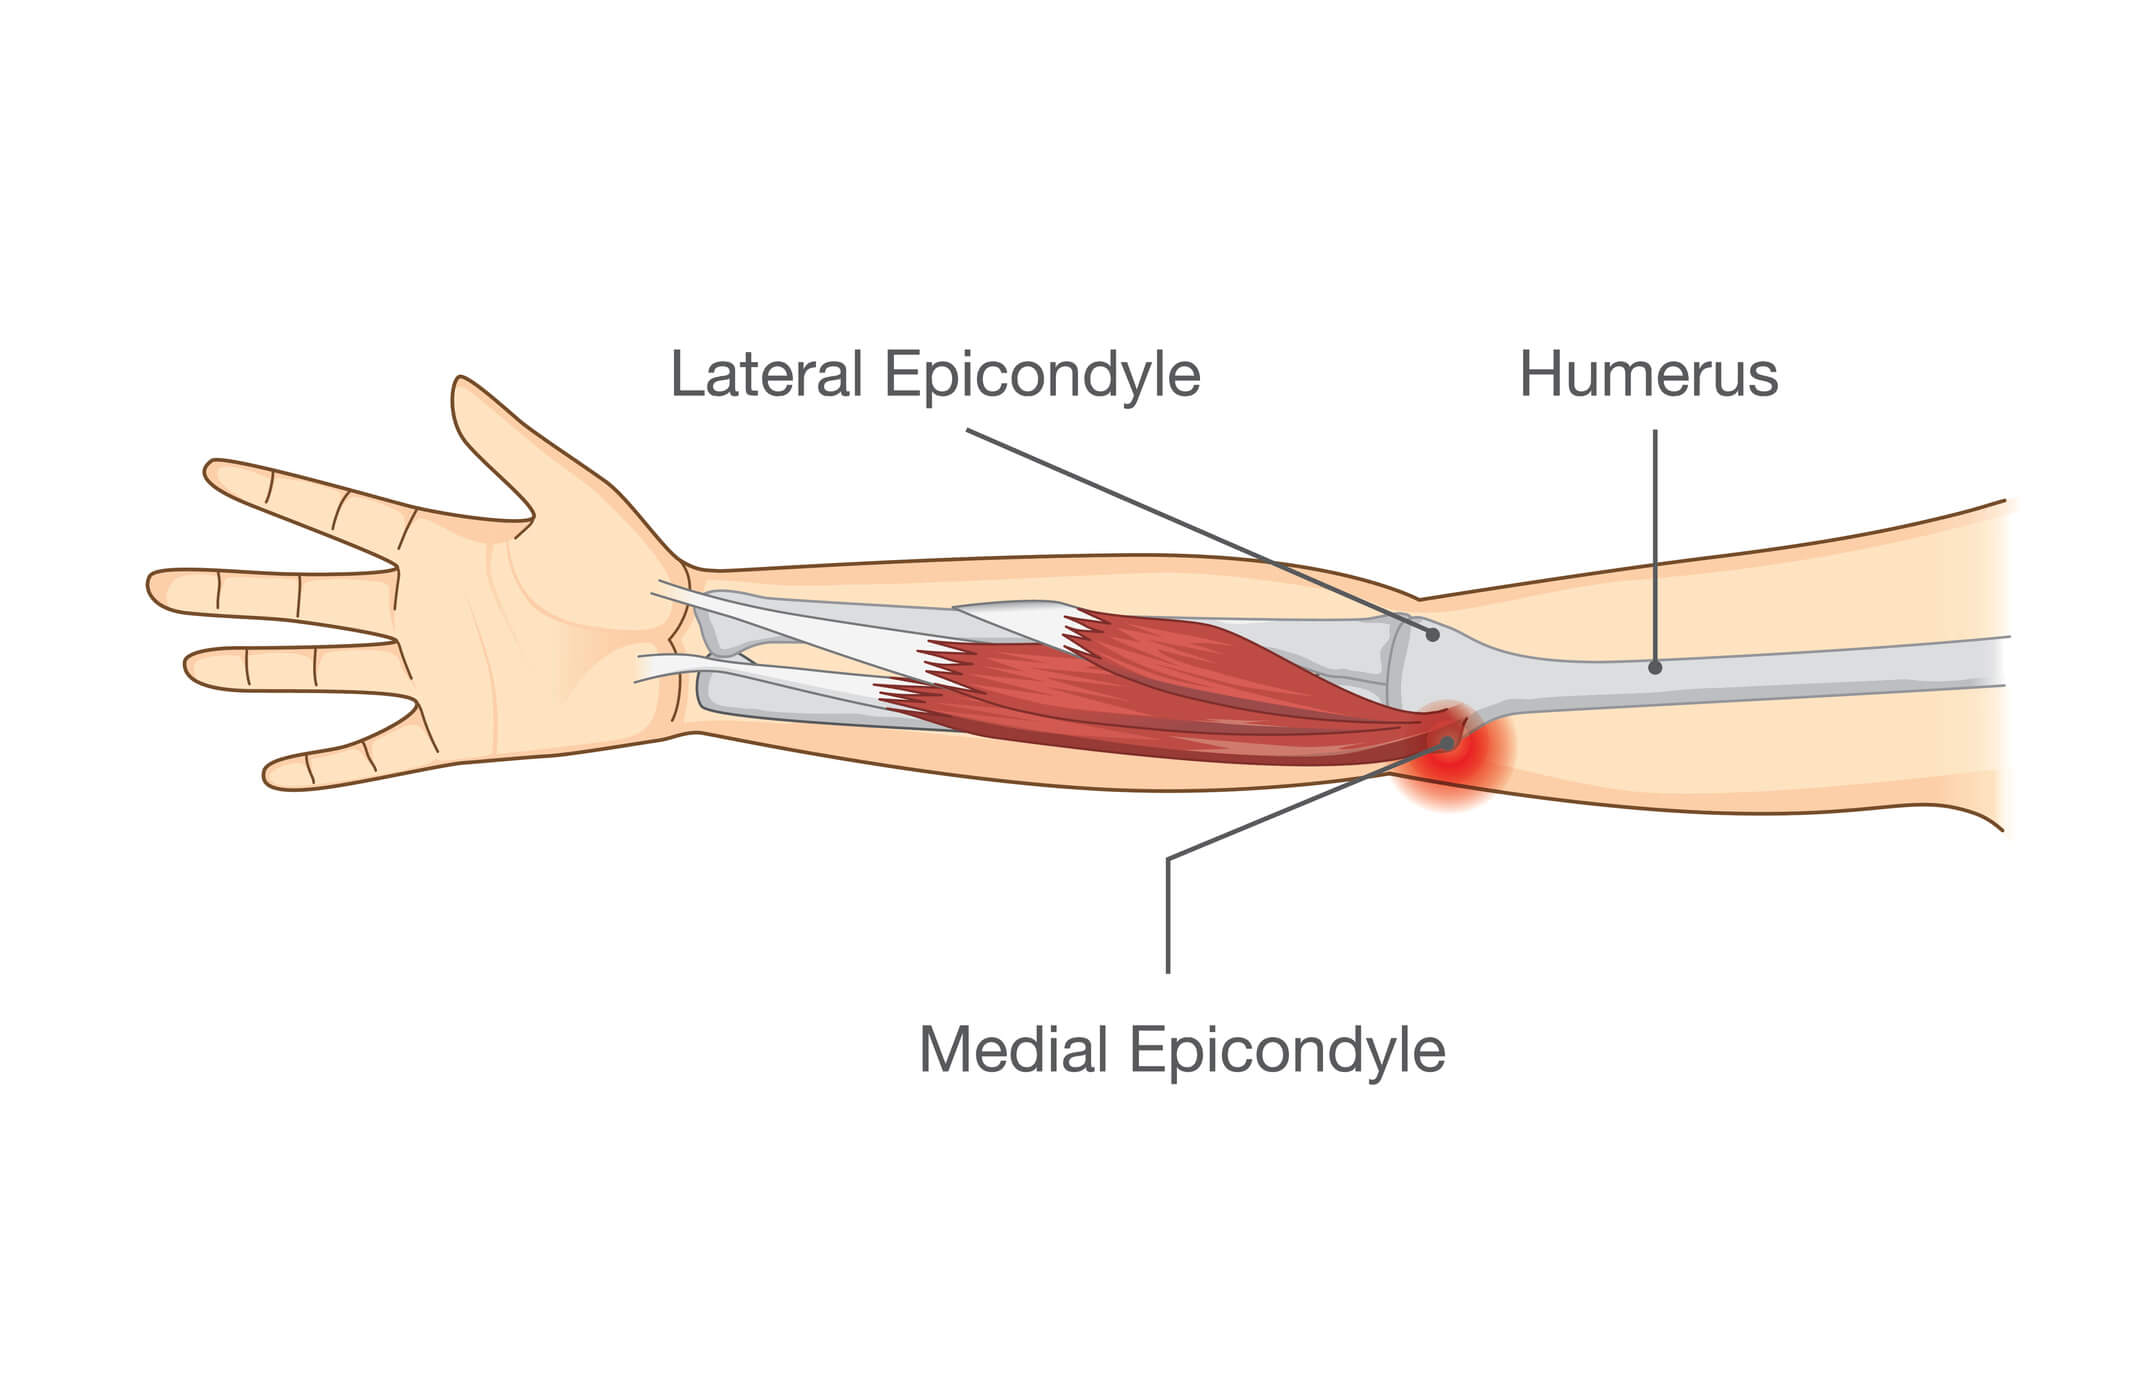 Medical Image of the medial epicondyle of the elbow, where golfers elbow develops